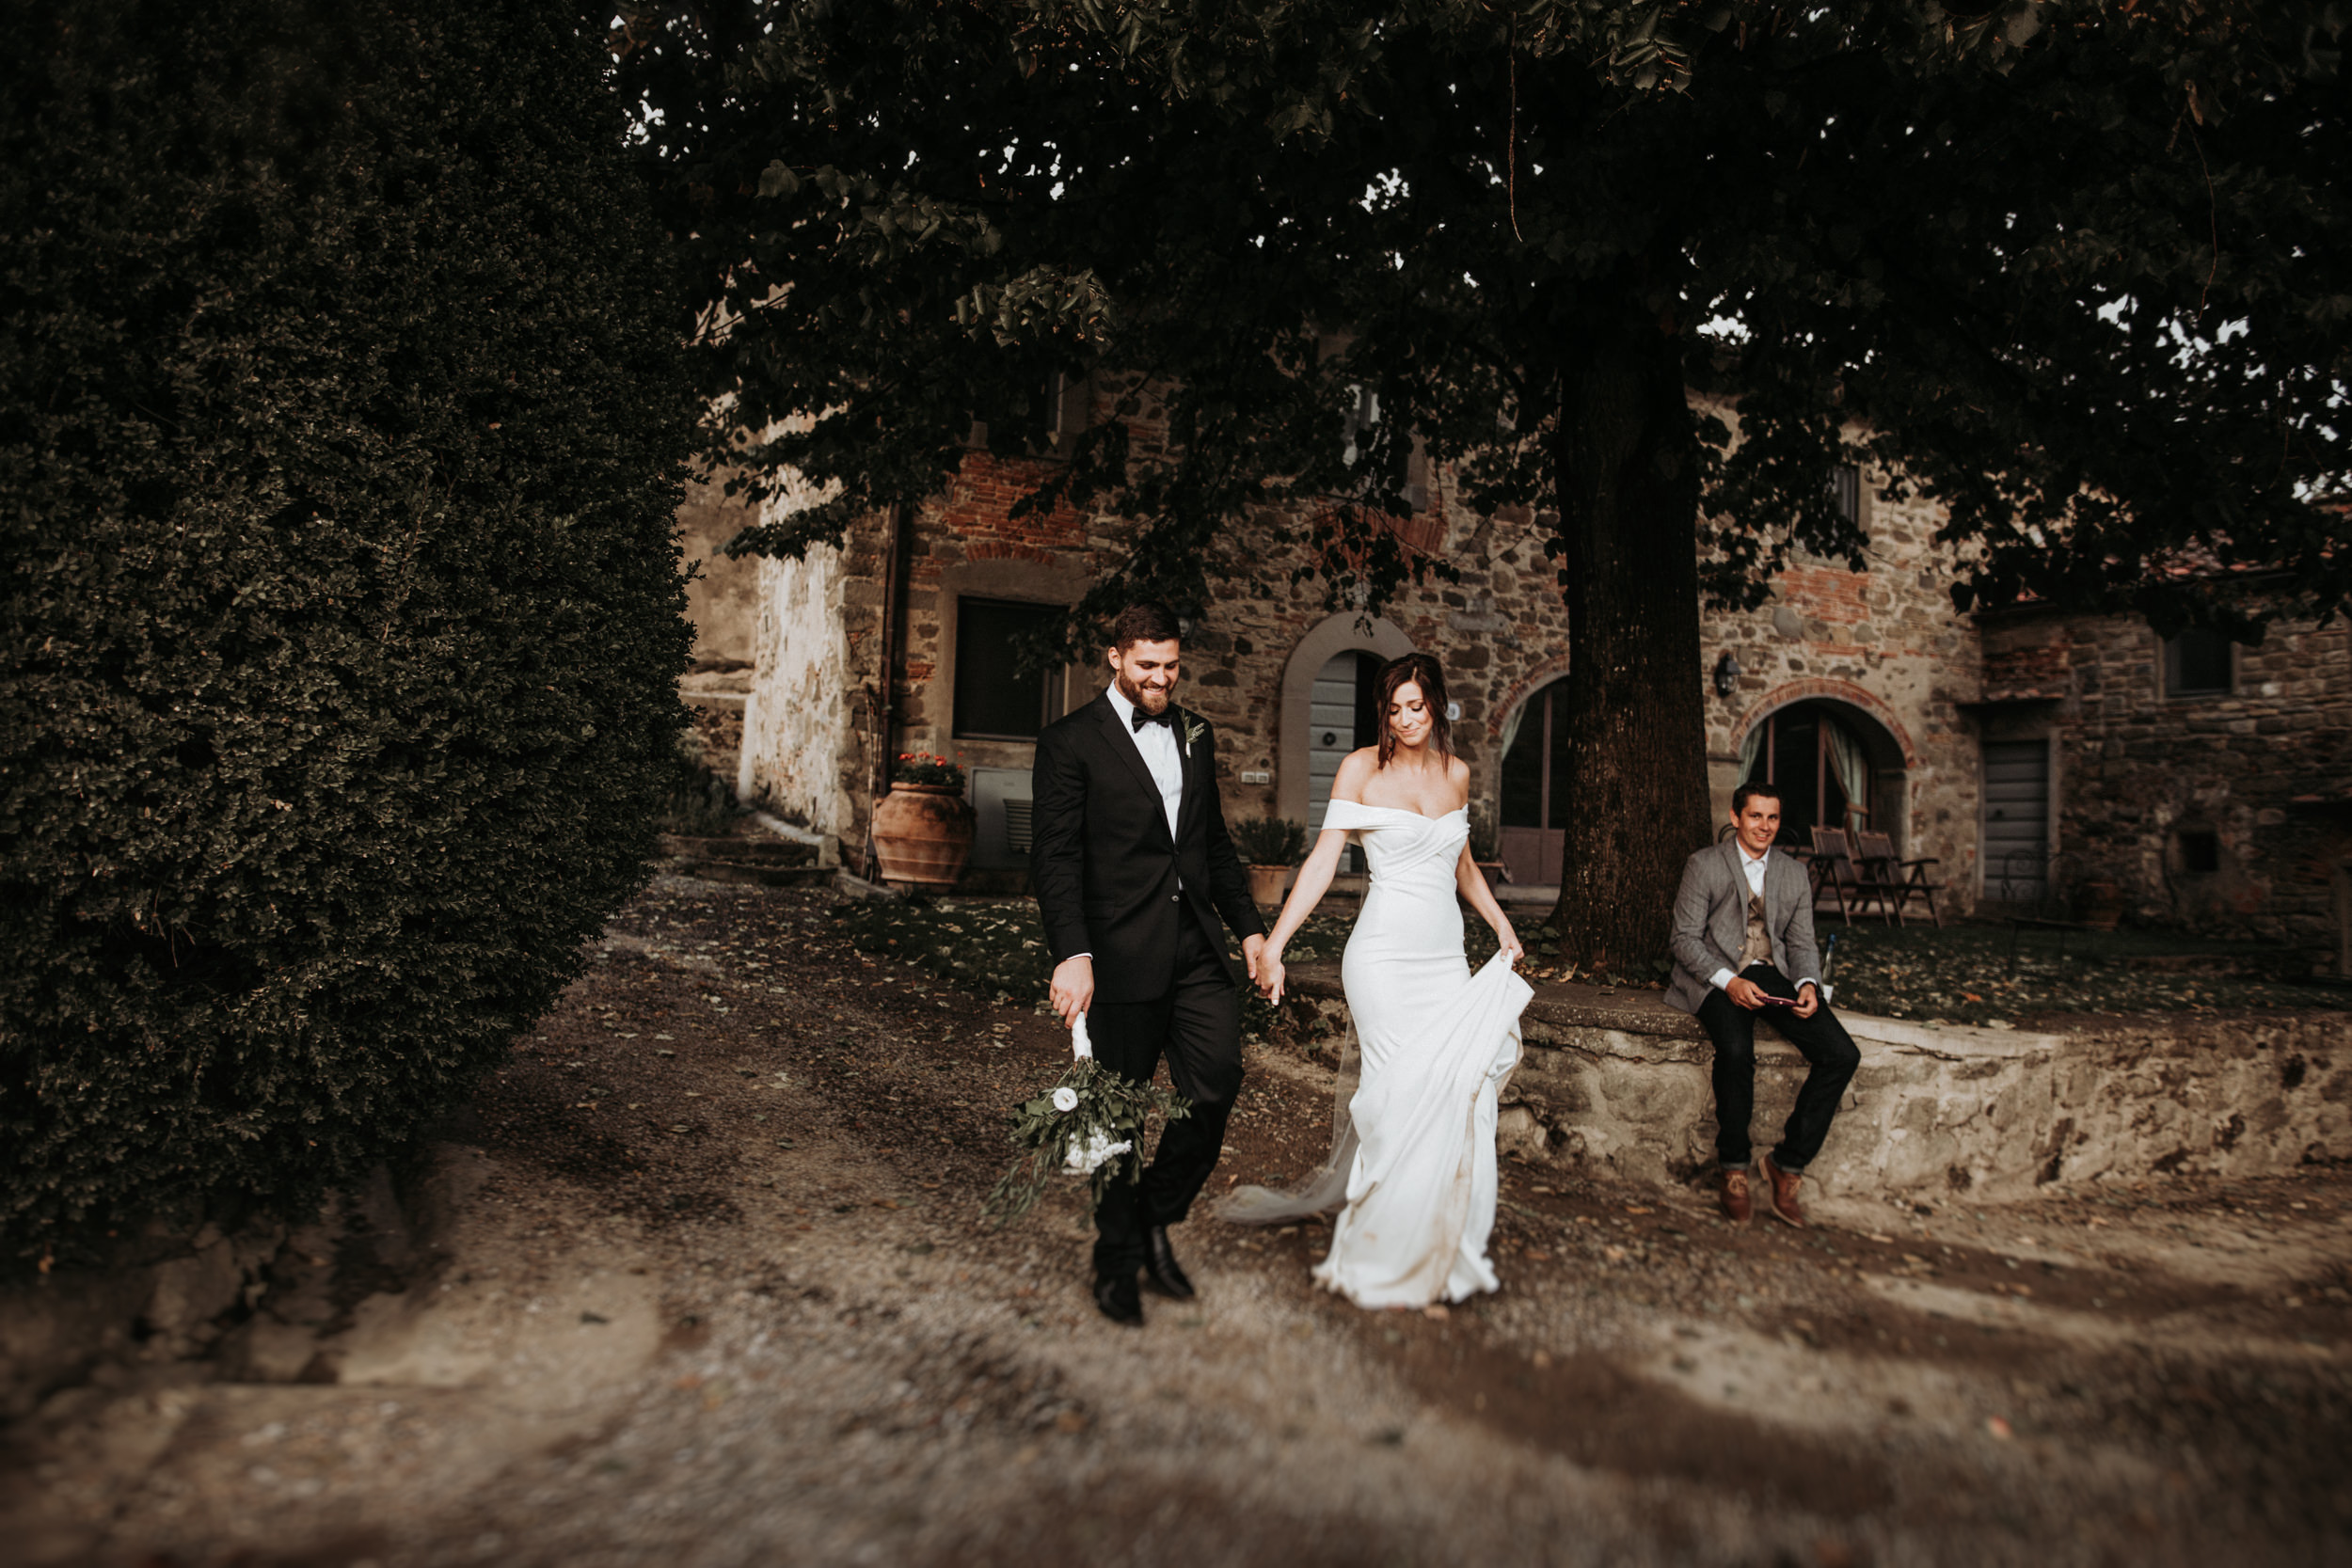 dm_photography_KW_Tuscanyweddingday_349